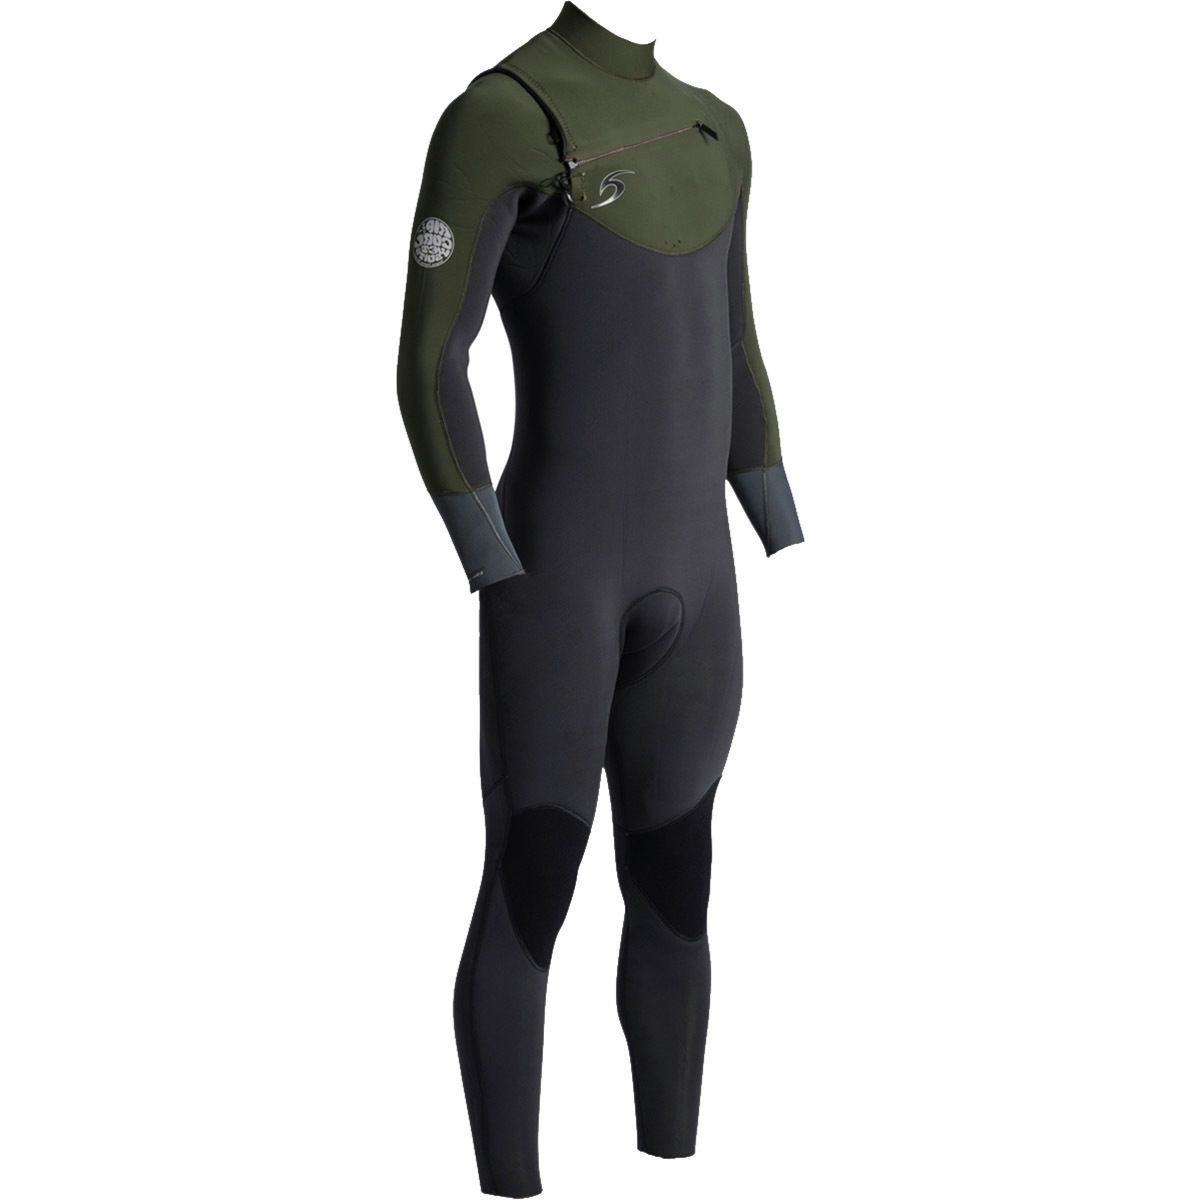 Rip Curl Dawn Patrol 4/3 Chest-Zip Full Wetsuit - Men's